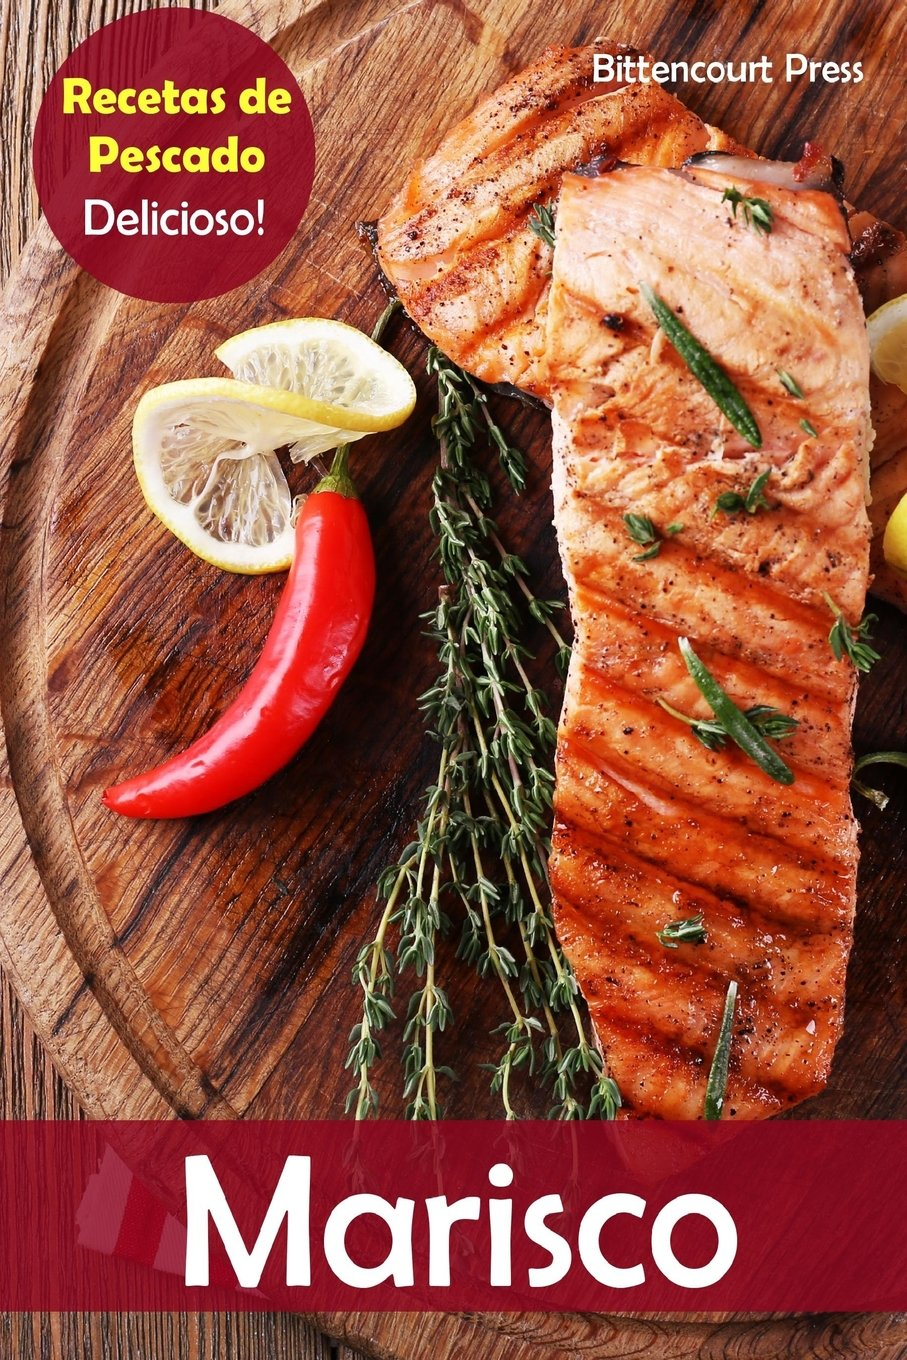 Marisco: Recetas de Pescado: Delicioso! (Volume 1) (Spanish Edition): Bittencourt Press: 9781983767708: Amazon.com: Books